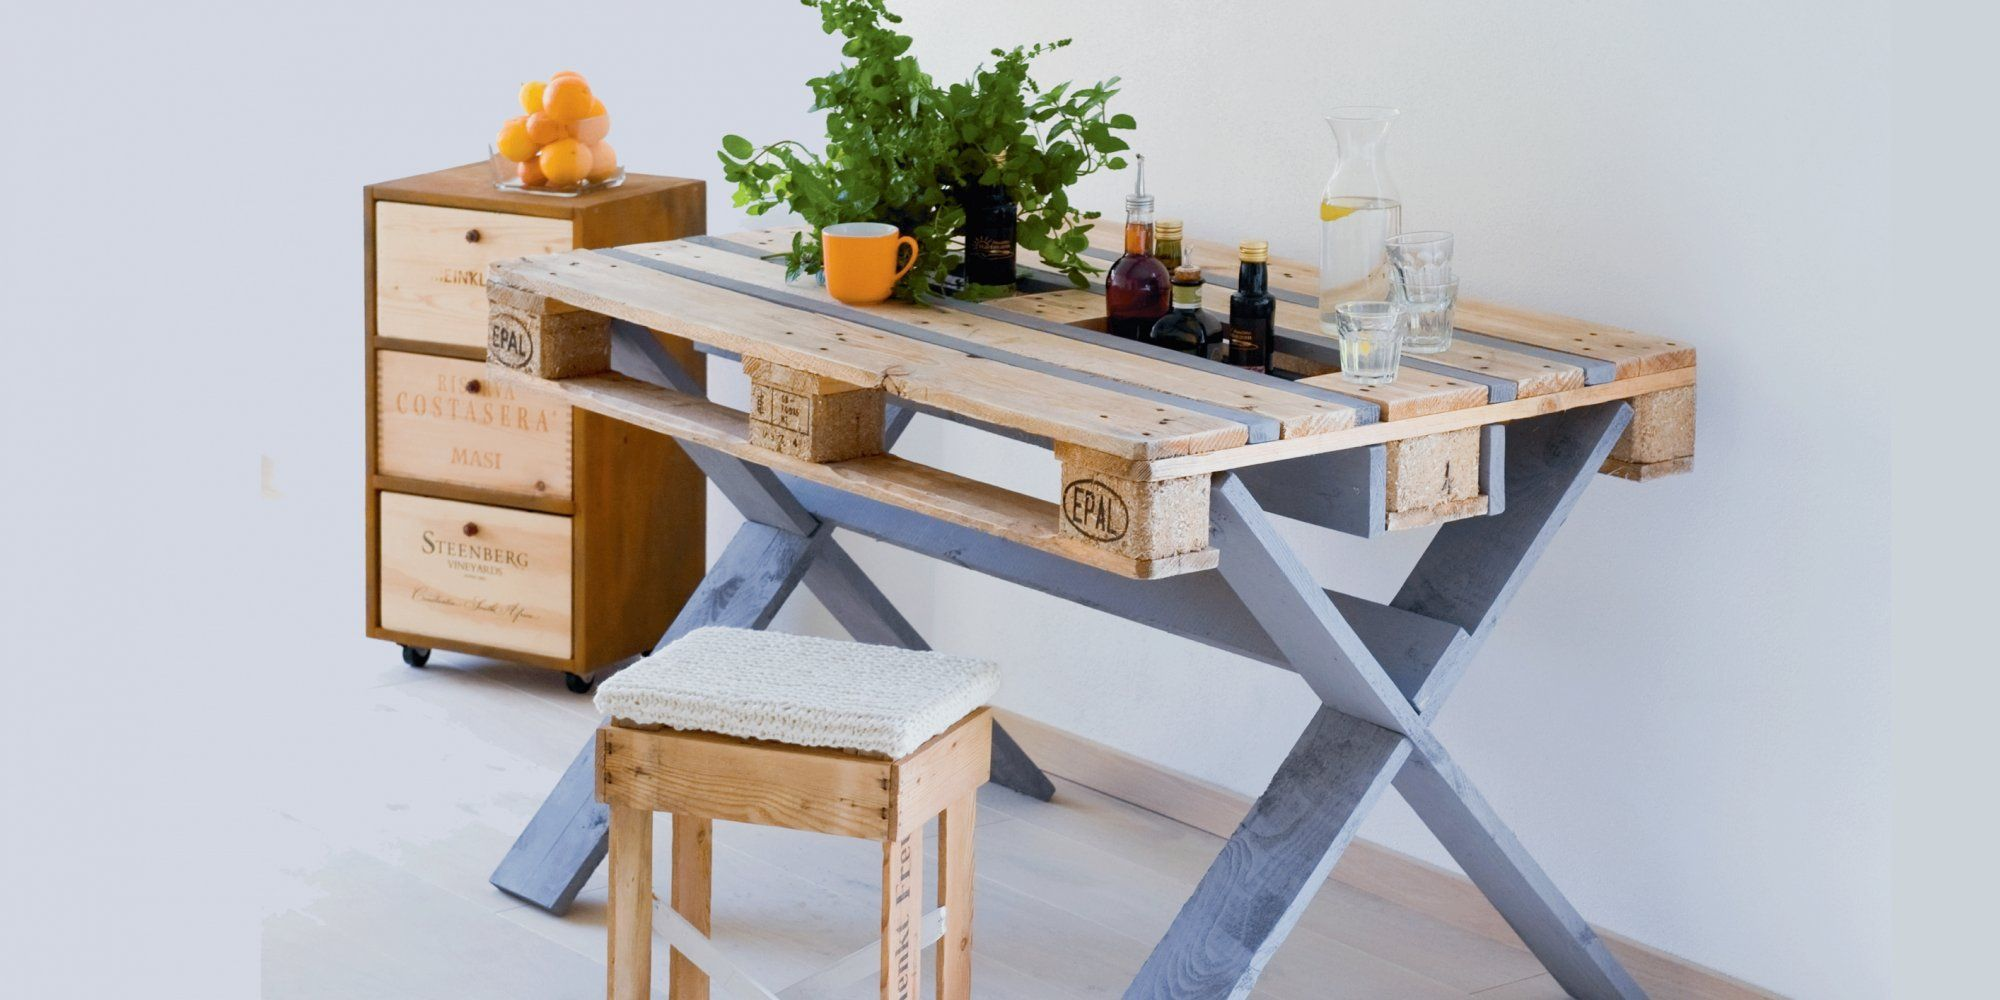 Break Down A Pallet The Easy Way For Wood Projects Wooden